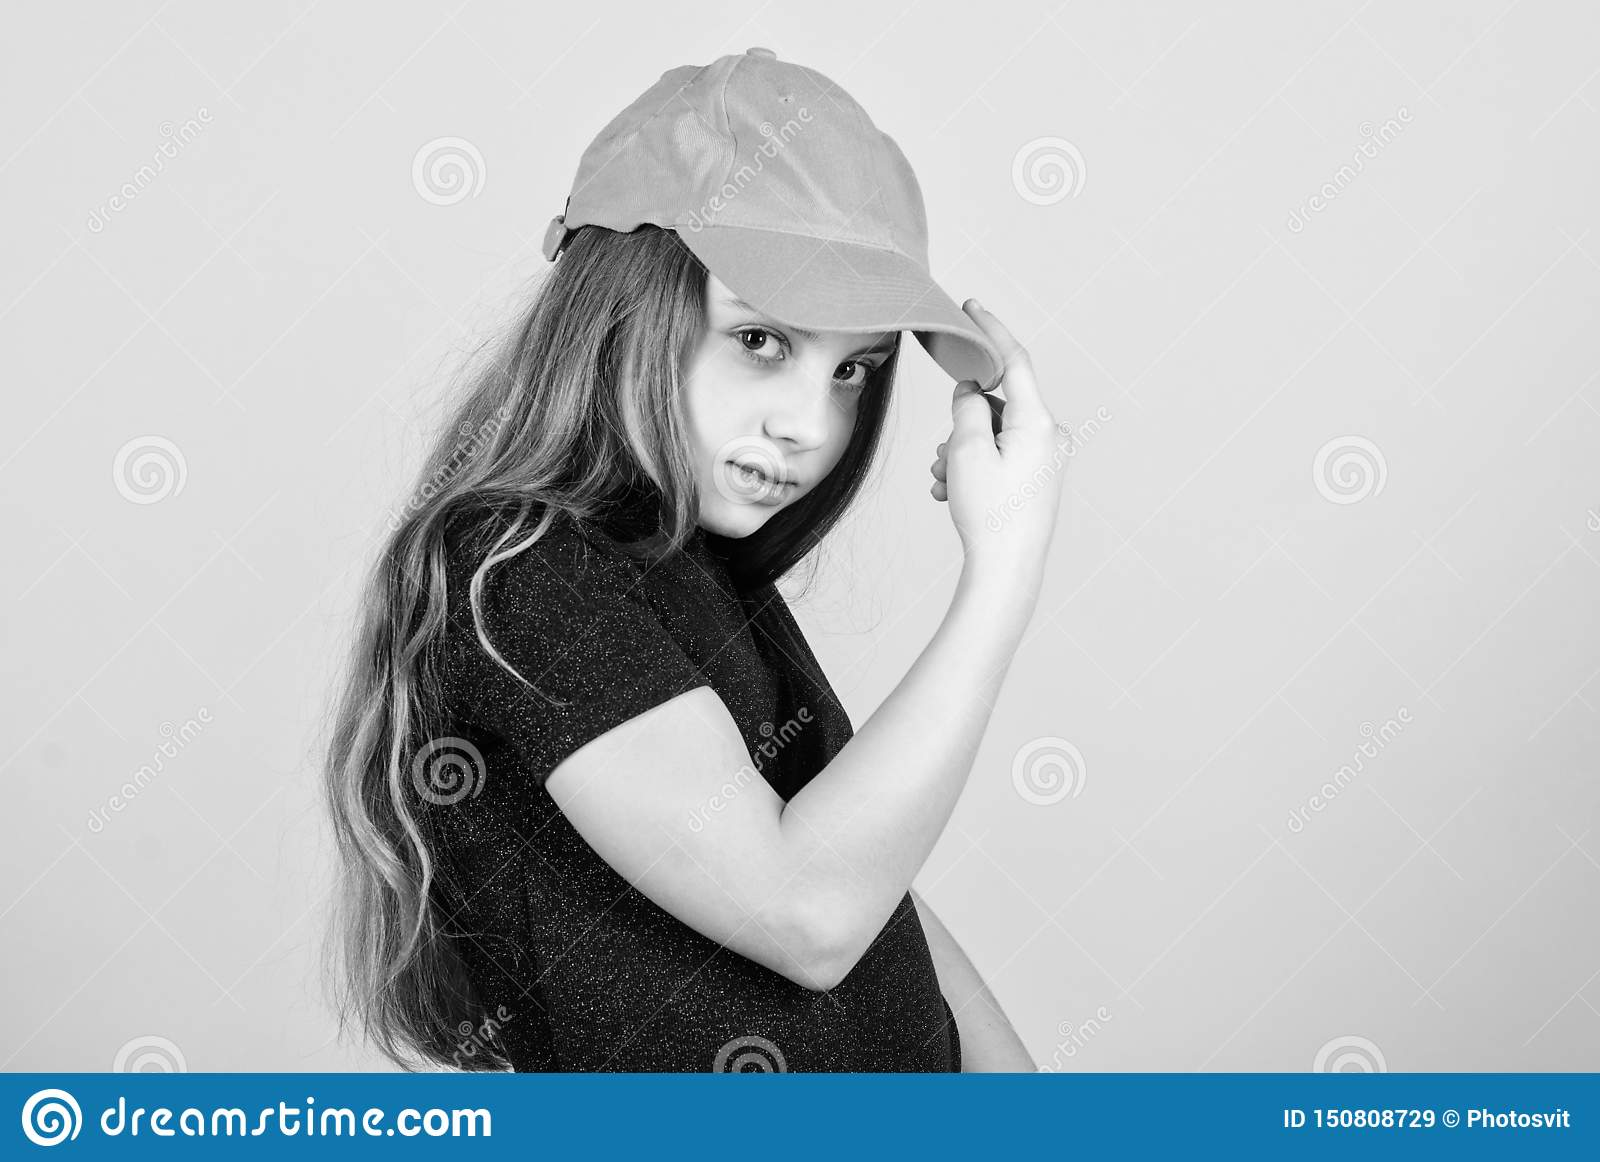 Fashion and beauty. Adorable little girl with adorable fashion look. Small cute fashion model. Fashionable child wearing